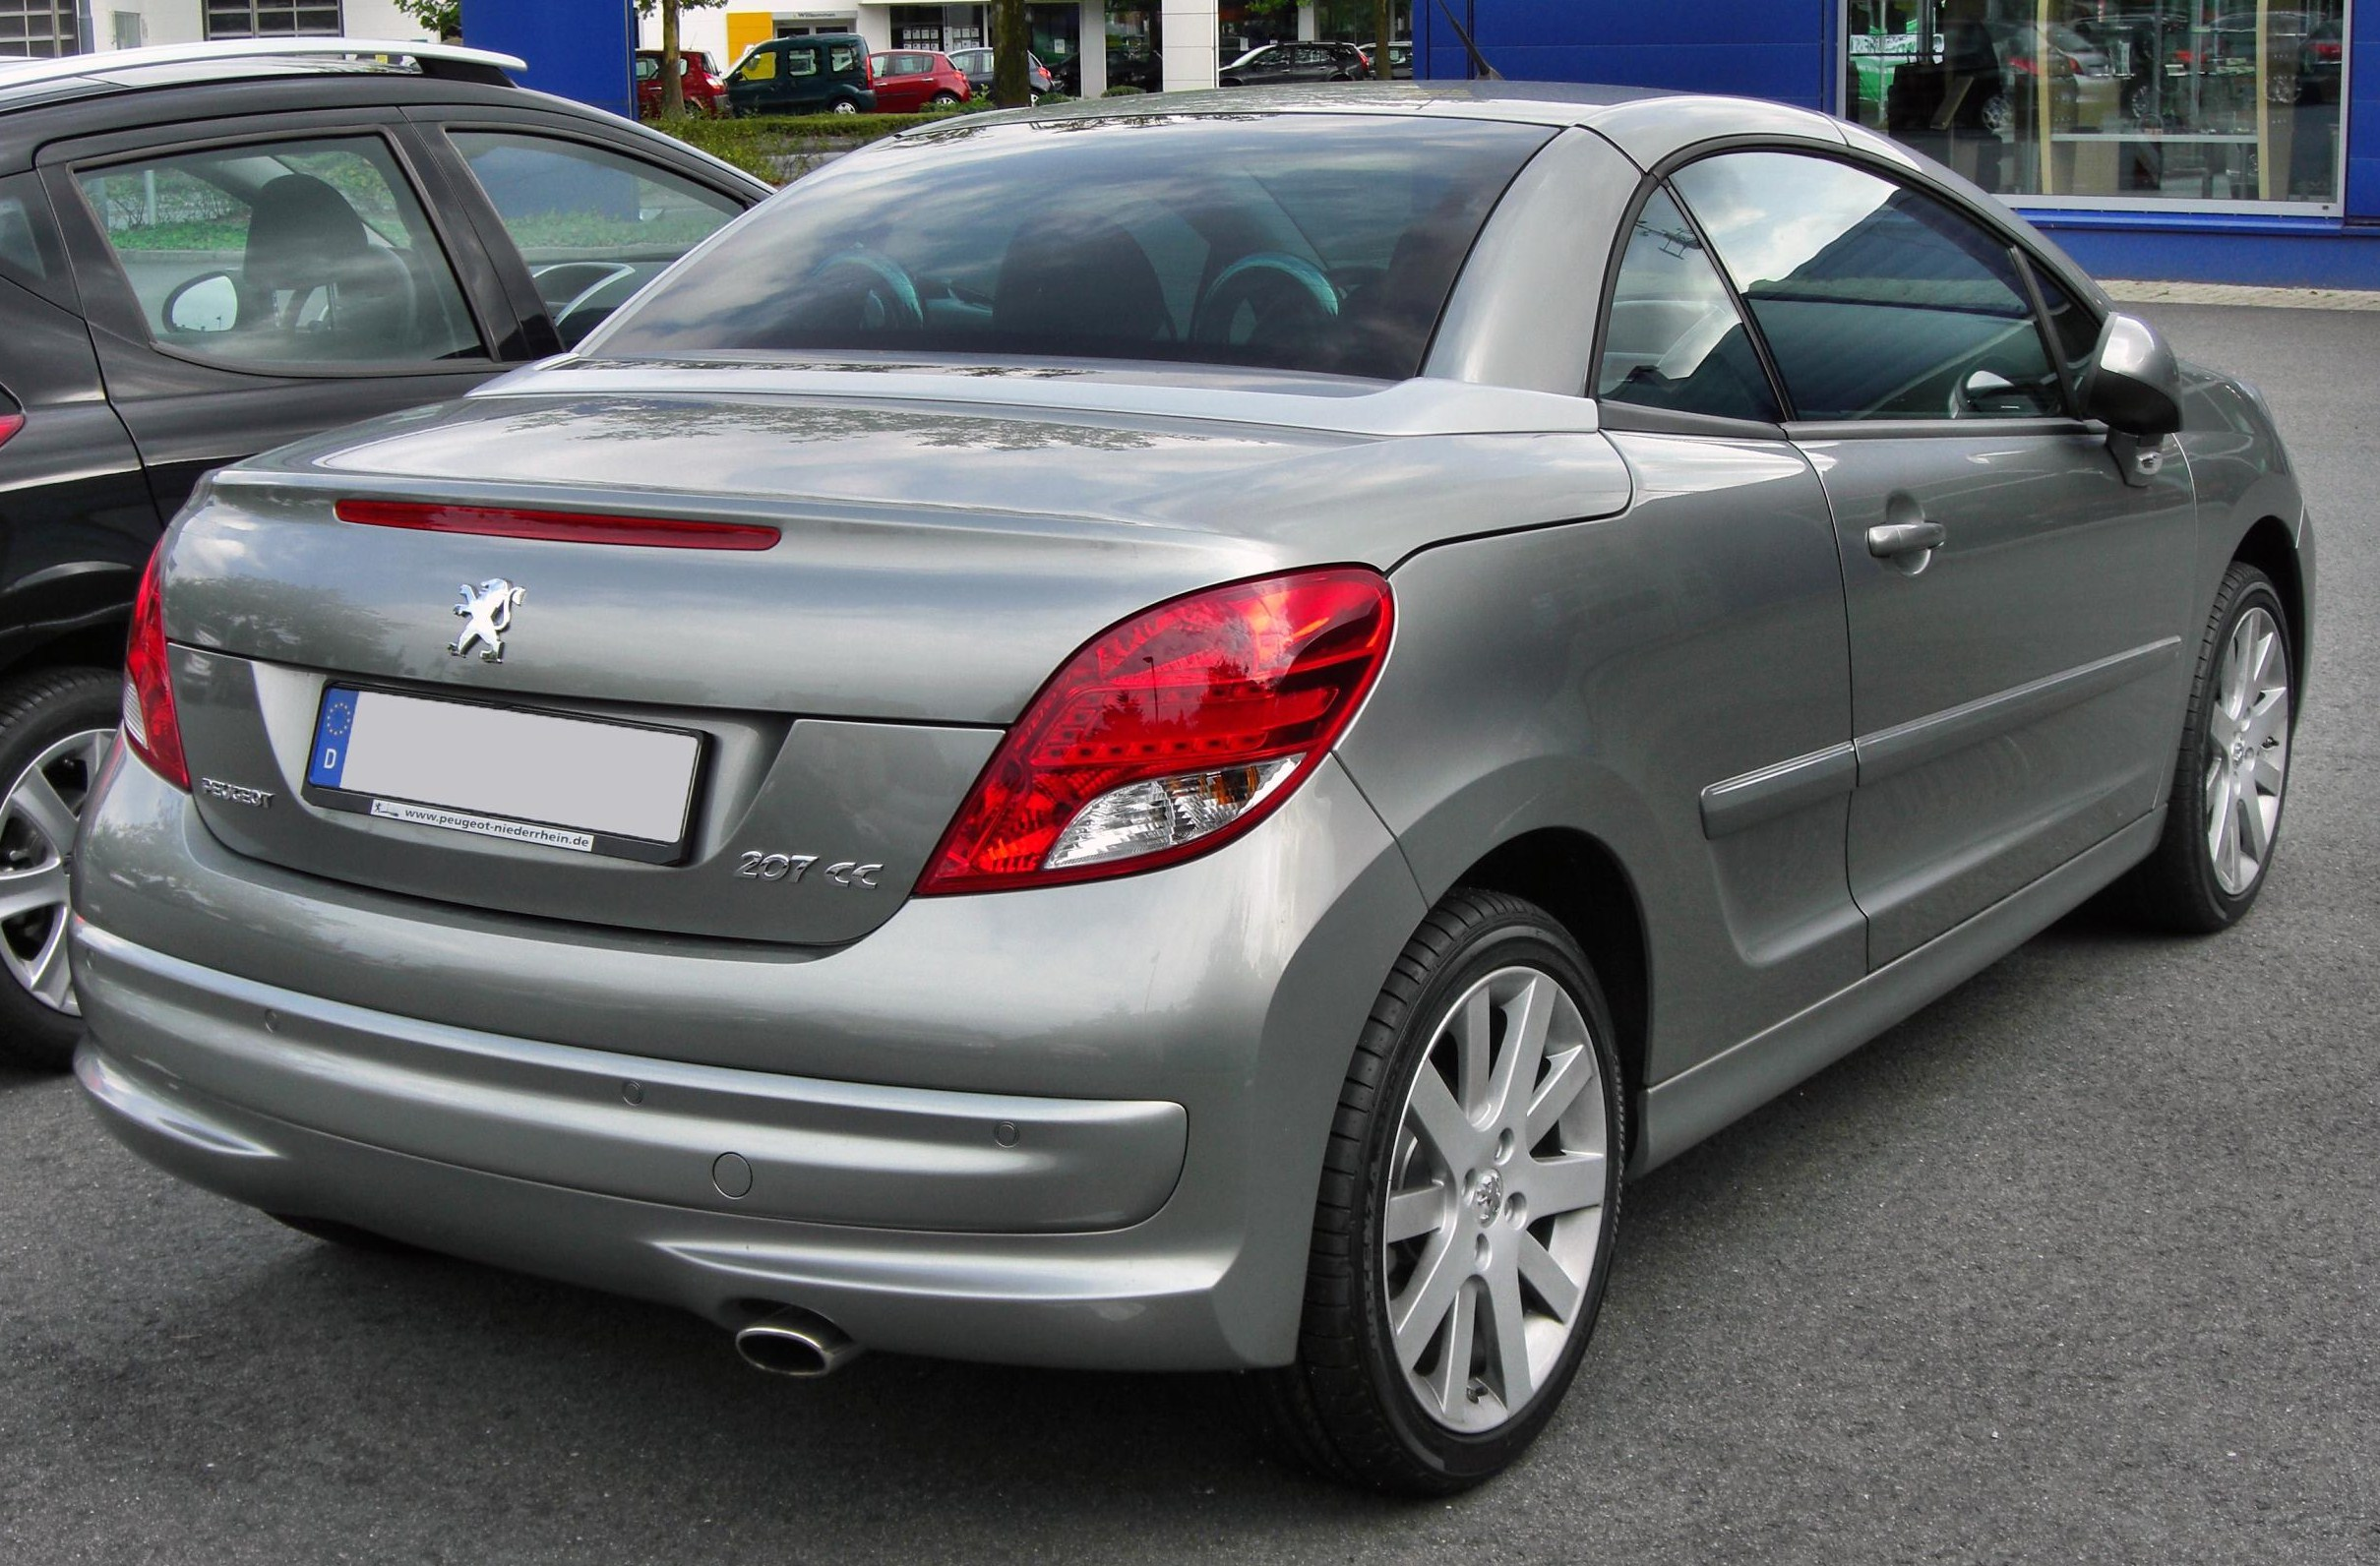 file peugeot 207 cc facelift 20090906 rear jpg wikimedia commons. Black Bedroom Furniture Sets. Home Design Ideas